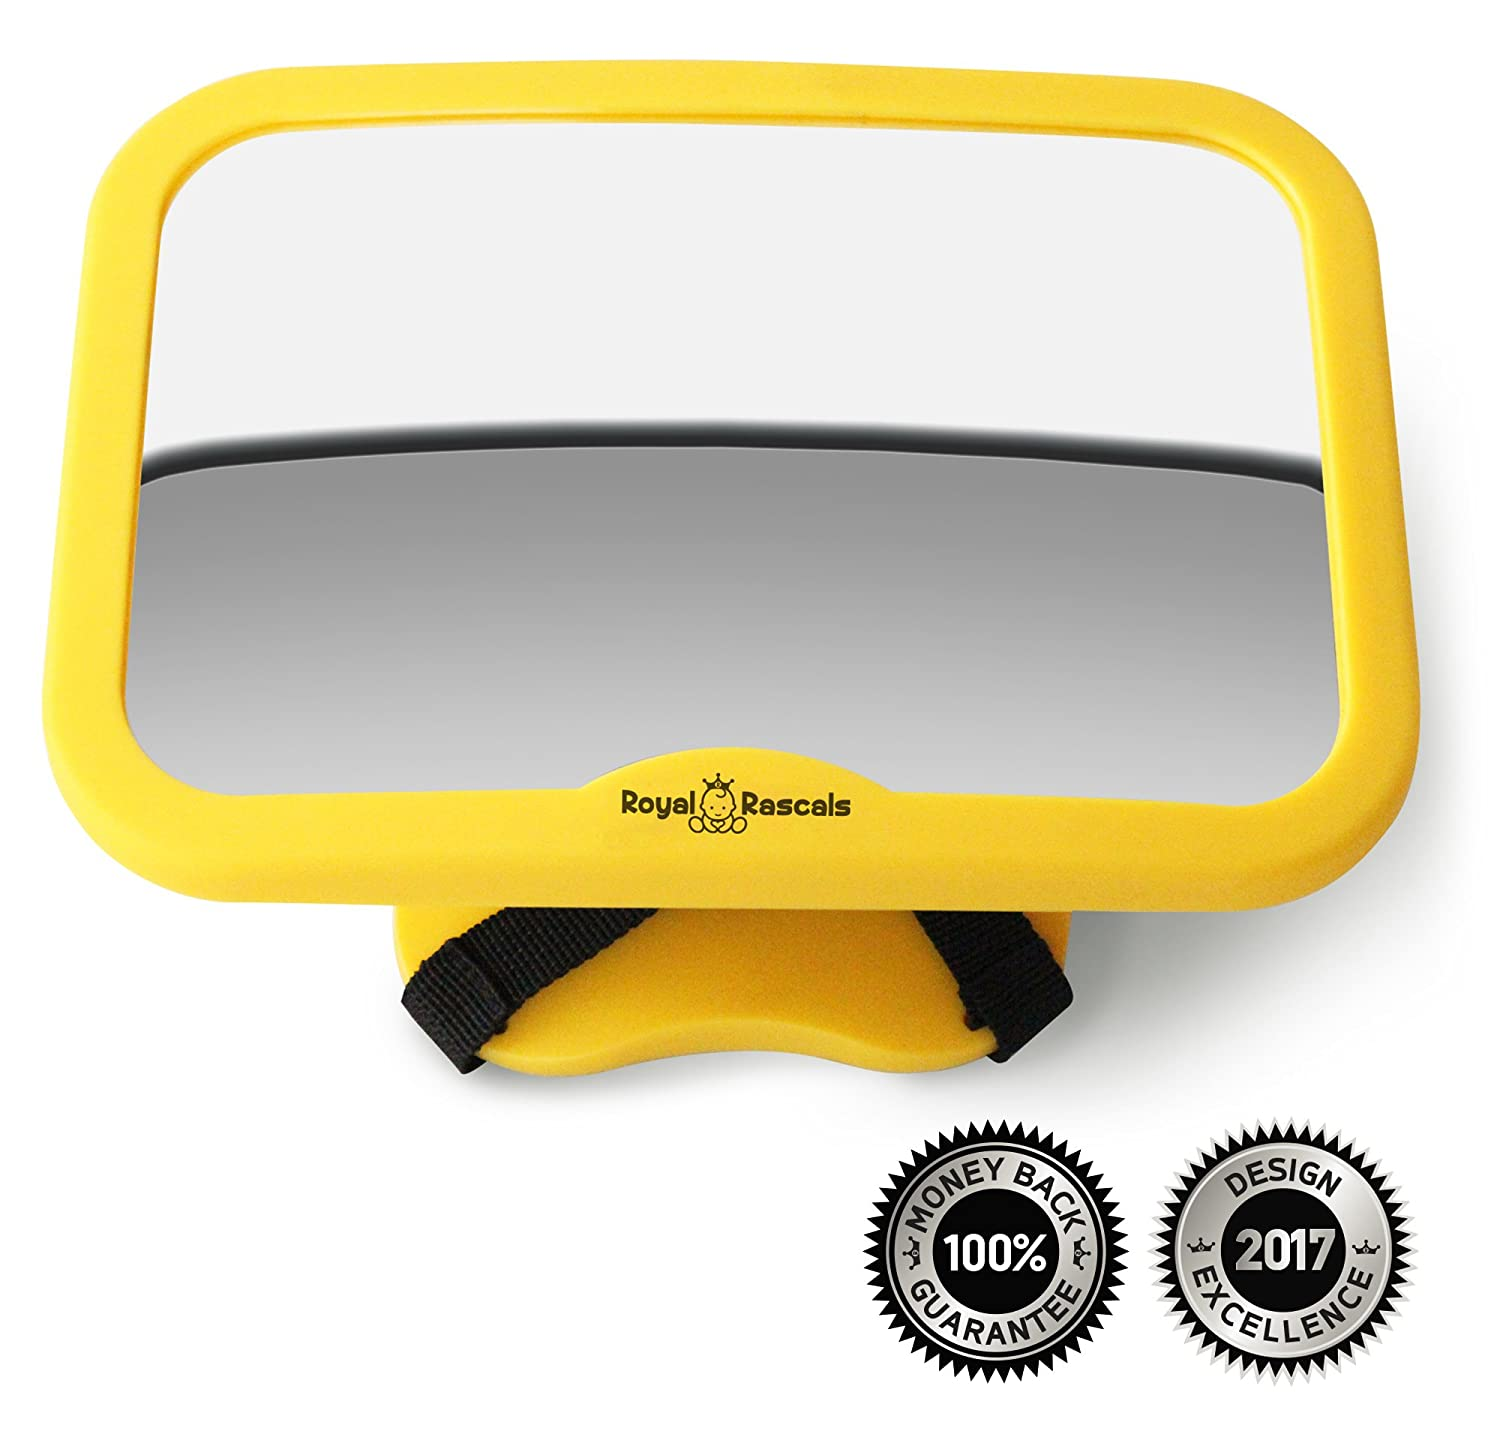 Baby Car Mirror for Backseat - Safety Yellow Shatterproof - Rear View Infants Car Seat Mirror for Rear Facing Babies in cars Royal Rascals XLR-3